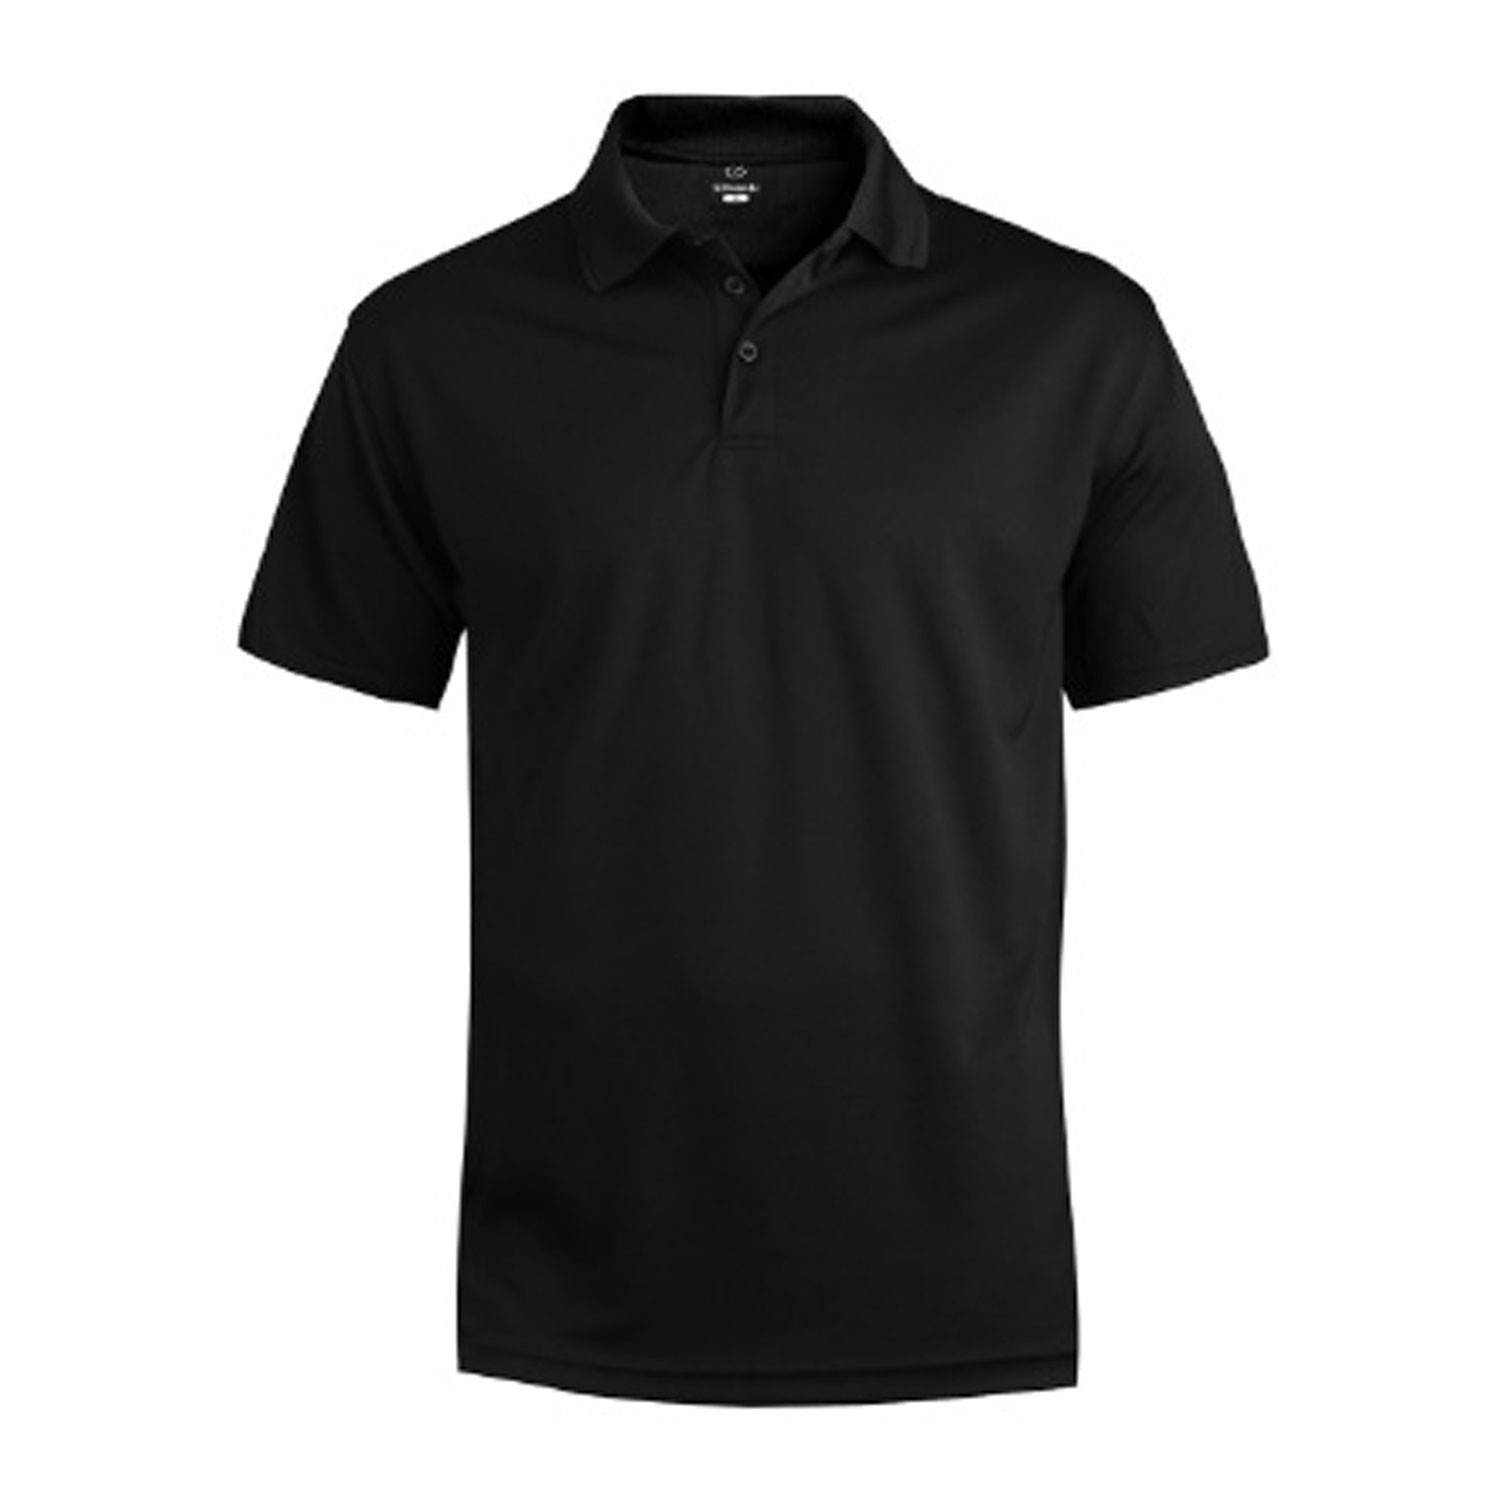 Edwards Mens Performance Flat Knit Short Sleeve Polo